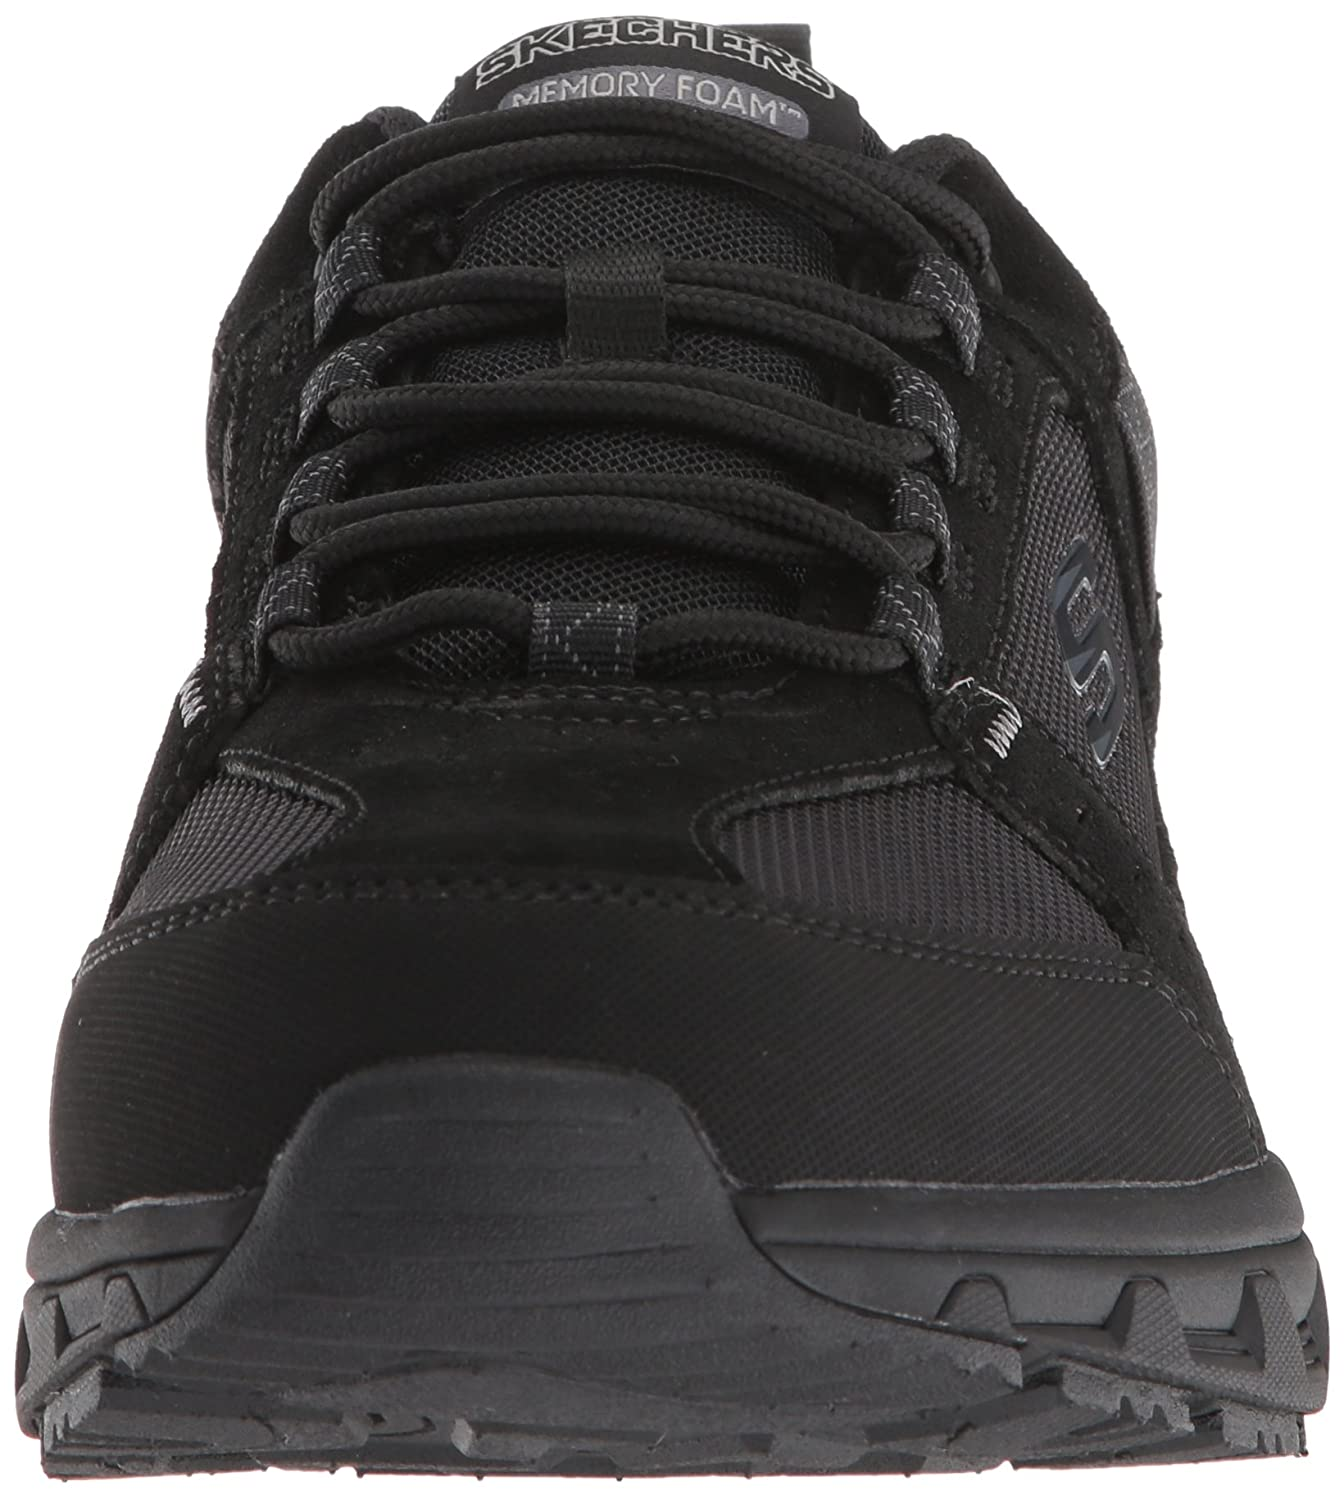 Skechers Black Herren Oak Canyon Sneaker Black Skechers Bbk 44265c